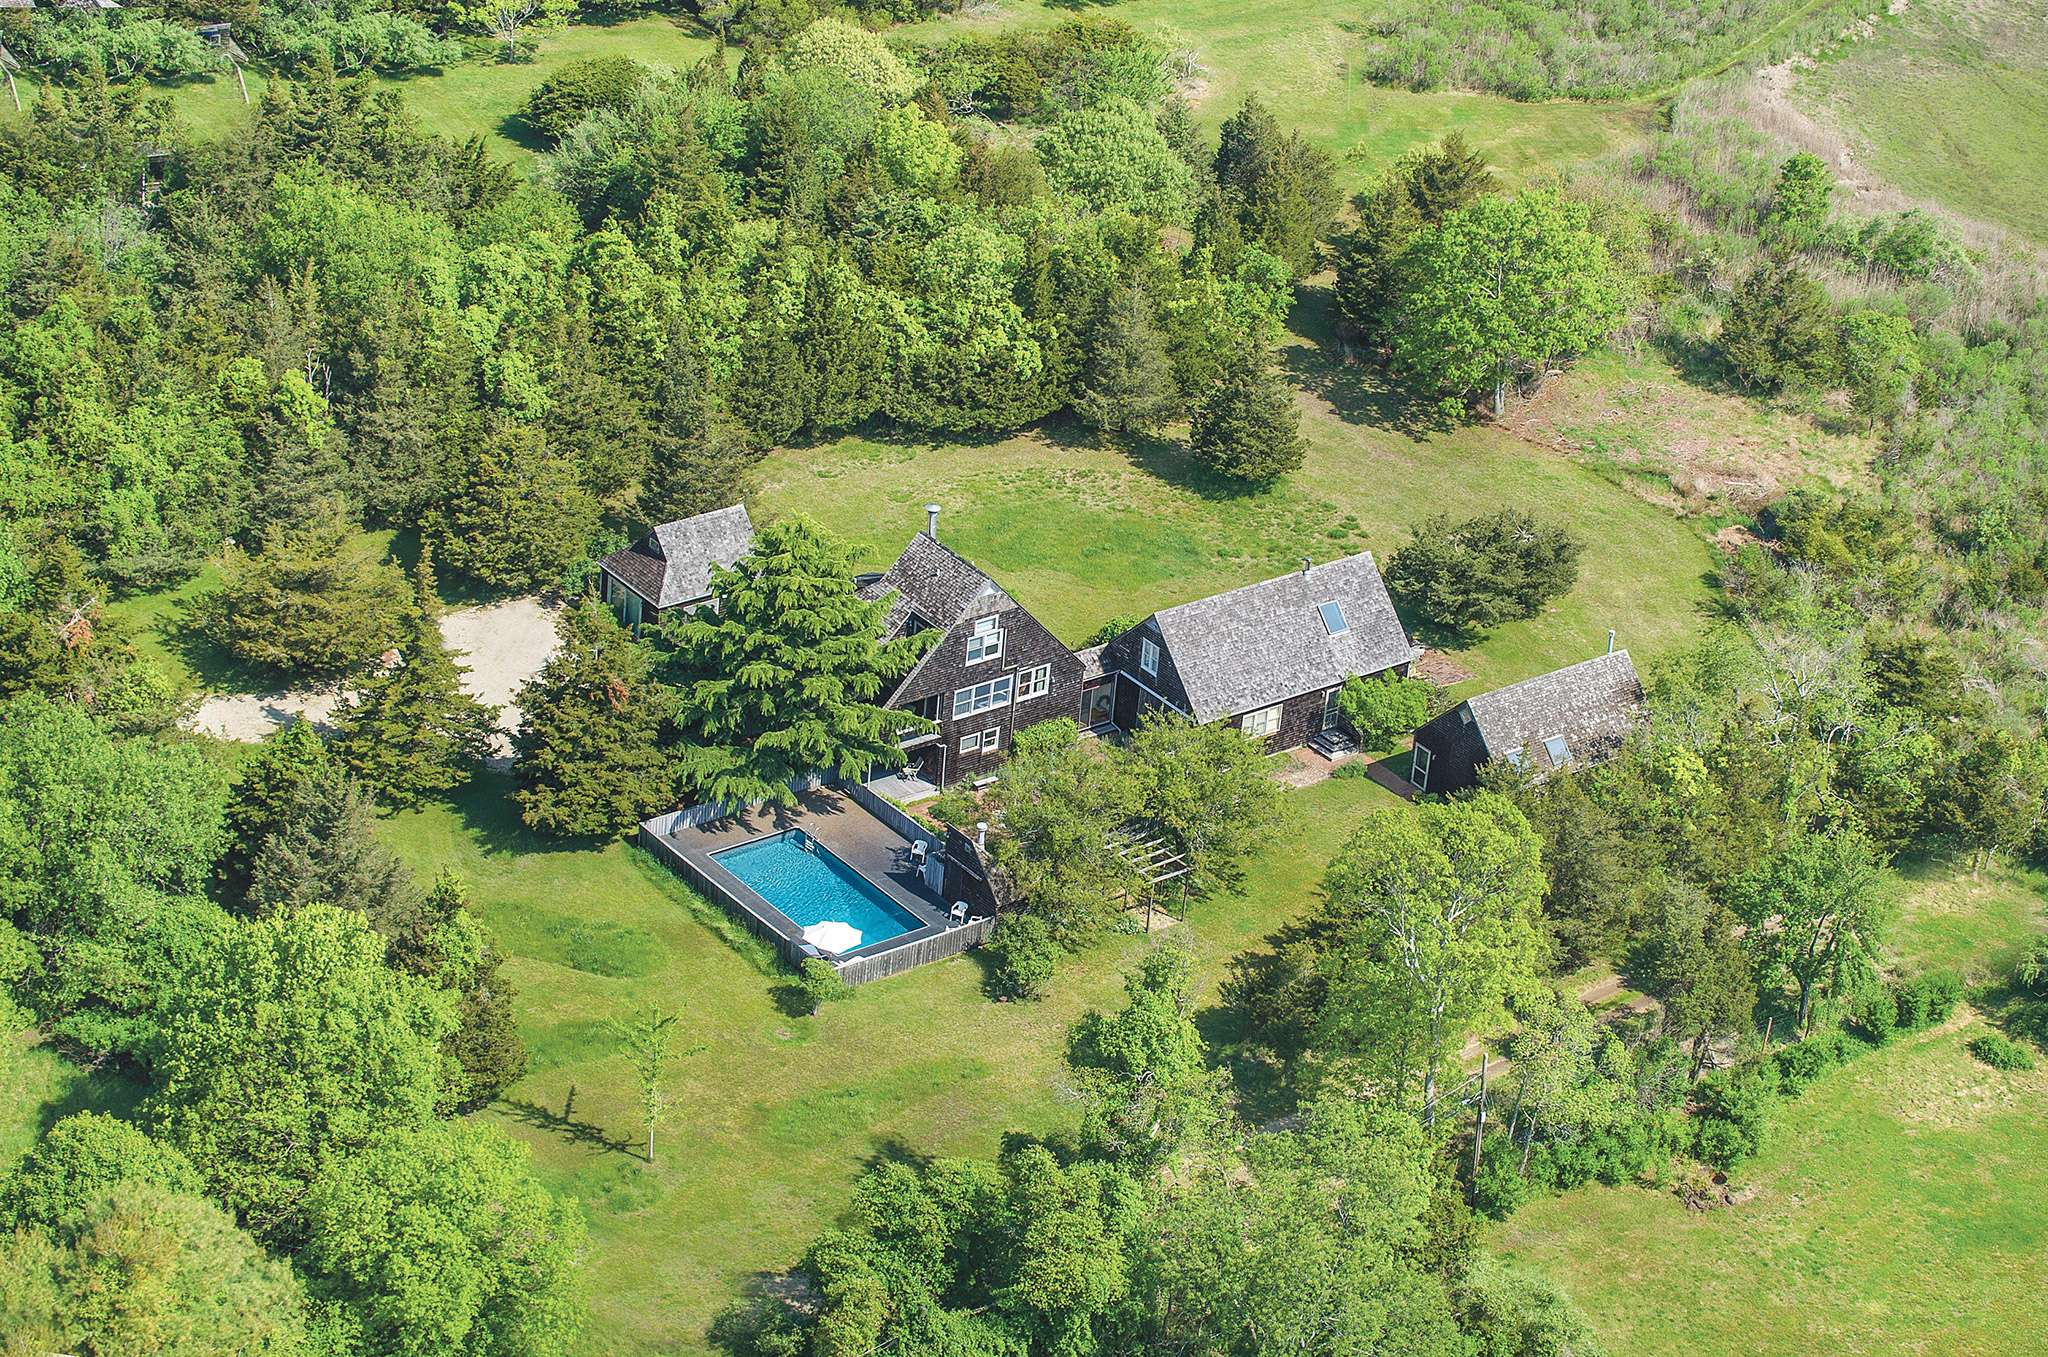 Single Family Home for Sale at Waterfront Published Home With 2 Artist Studios 1006 Springs Fireplace Road, East Hampton, New York